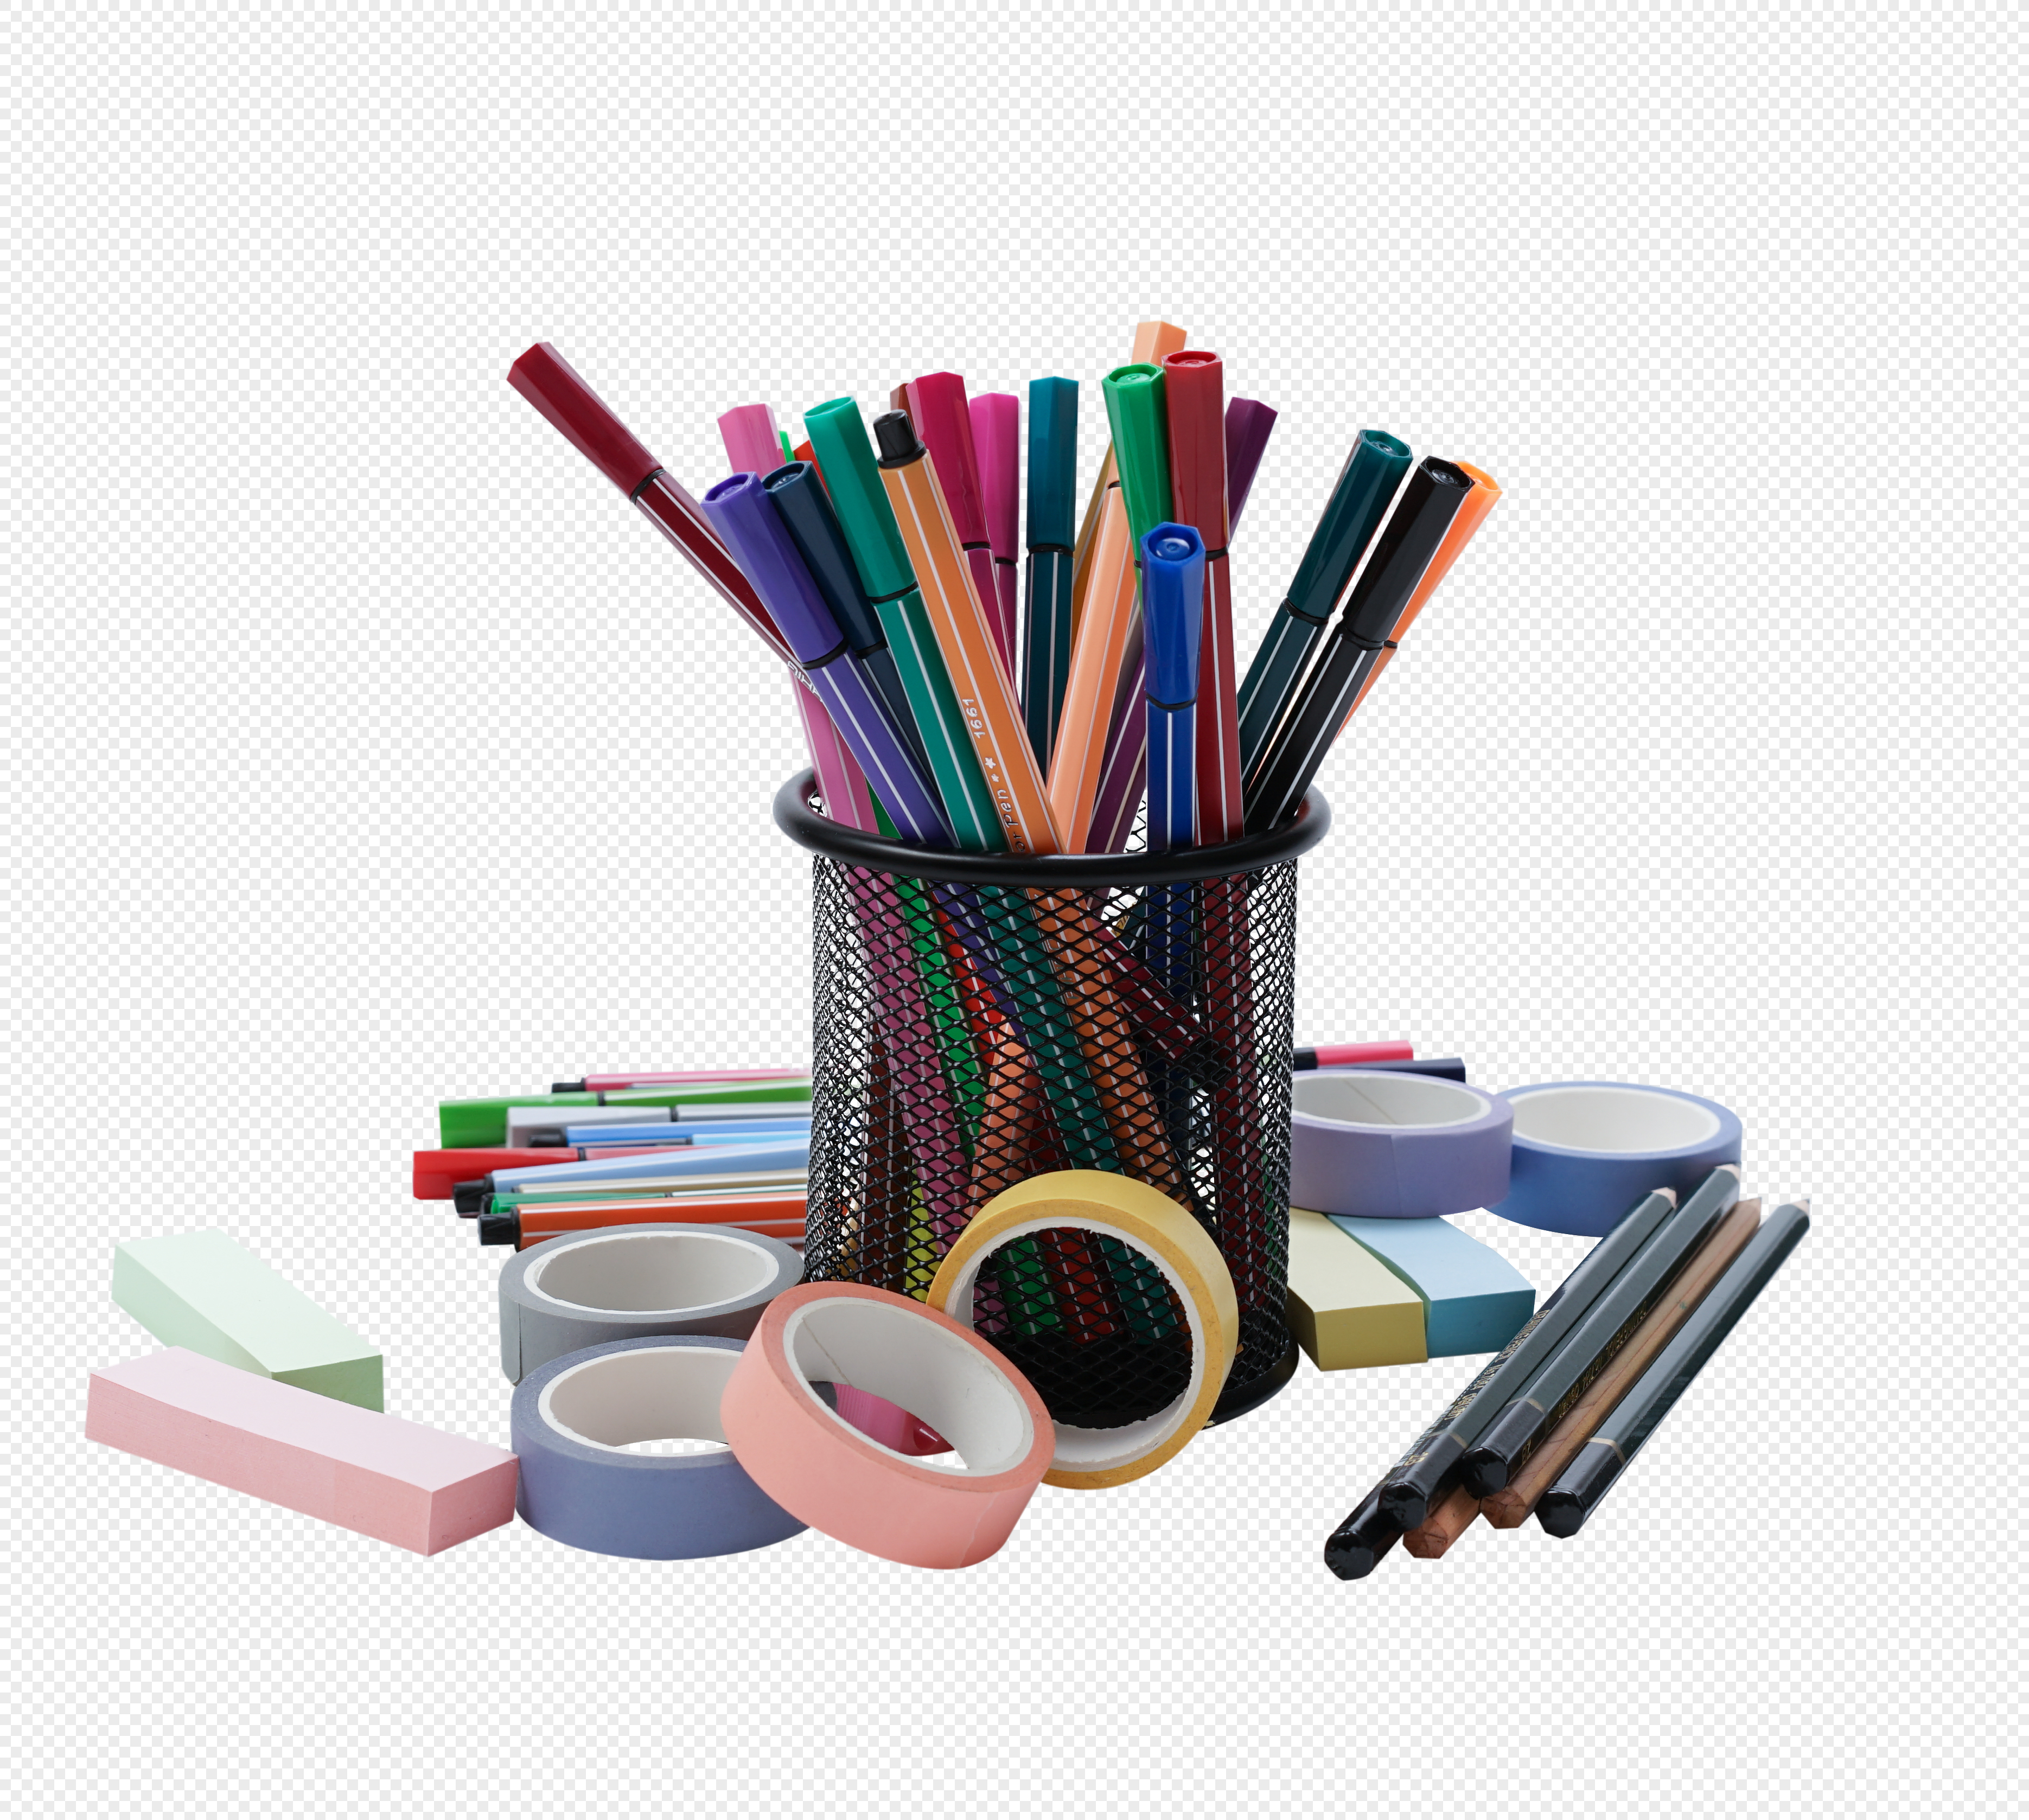 stationery pat pictures png image picture free download